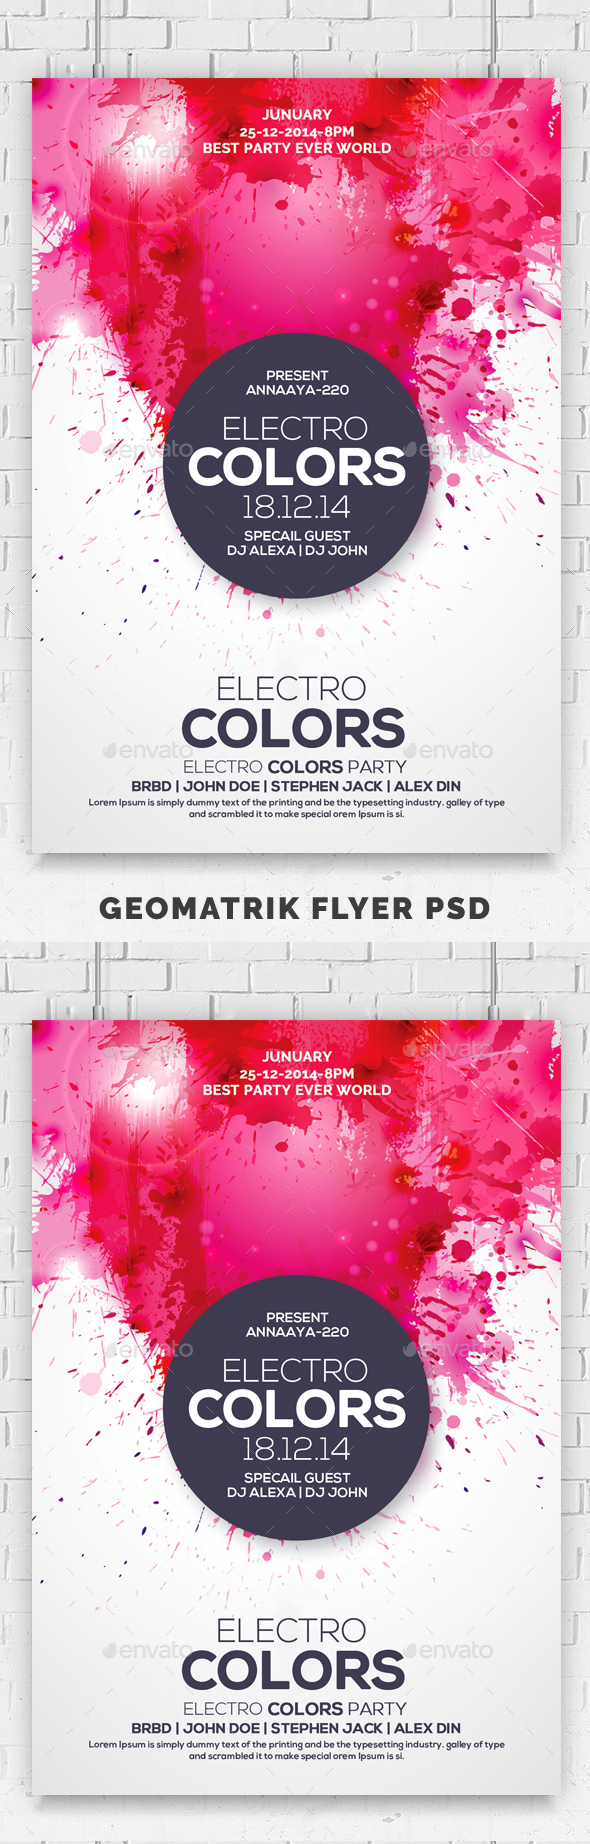 GraphicRiver Electro Colors Flyer 20685557